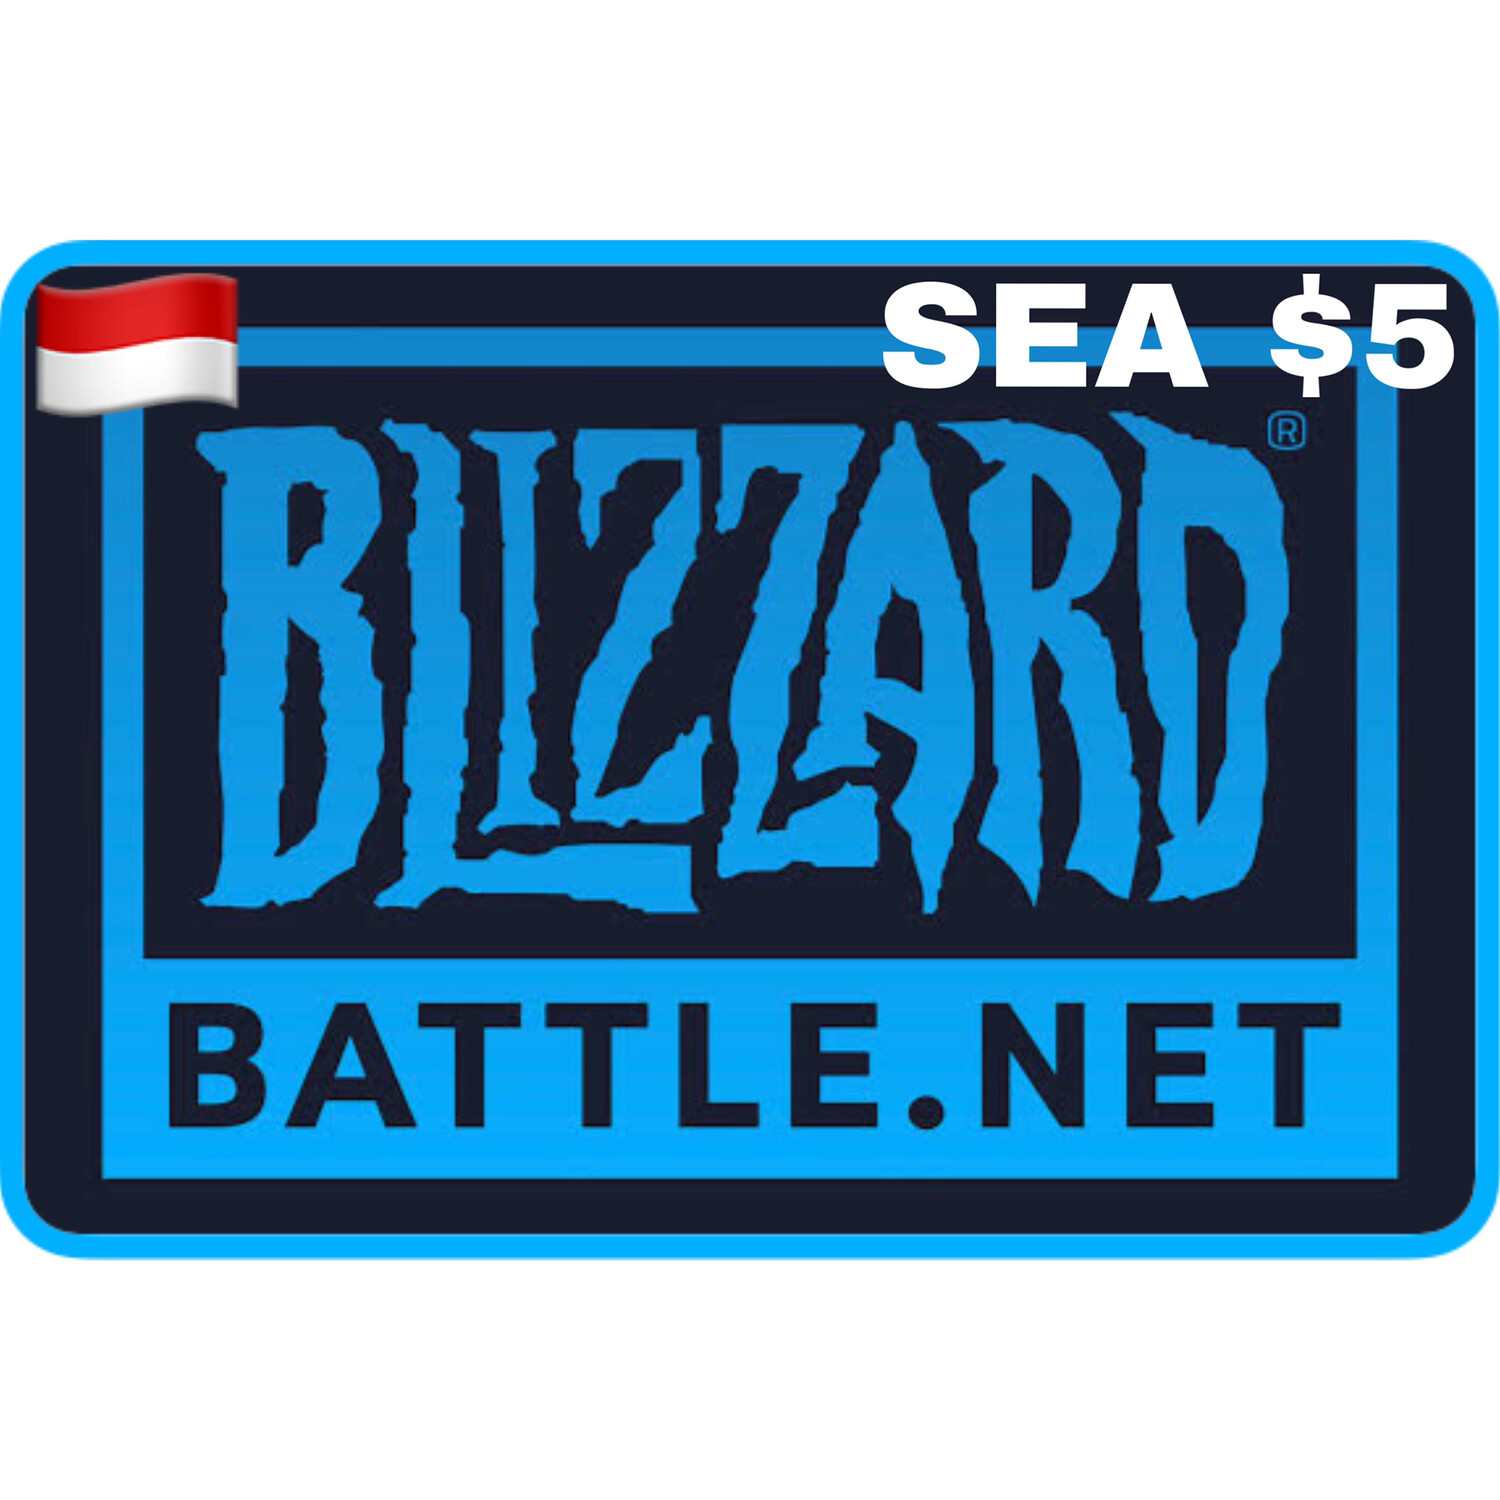 Battlenet Gift Card SEA $5 Blizzard Balance